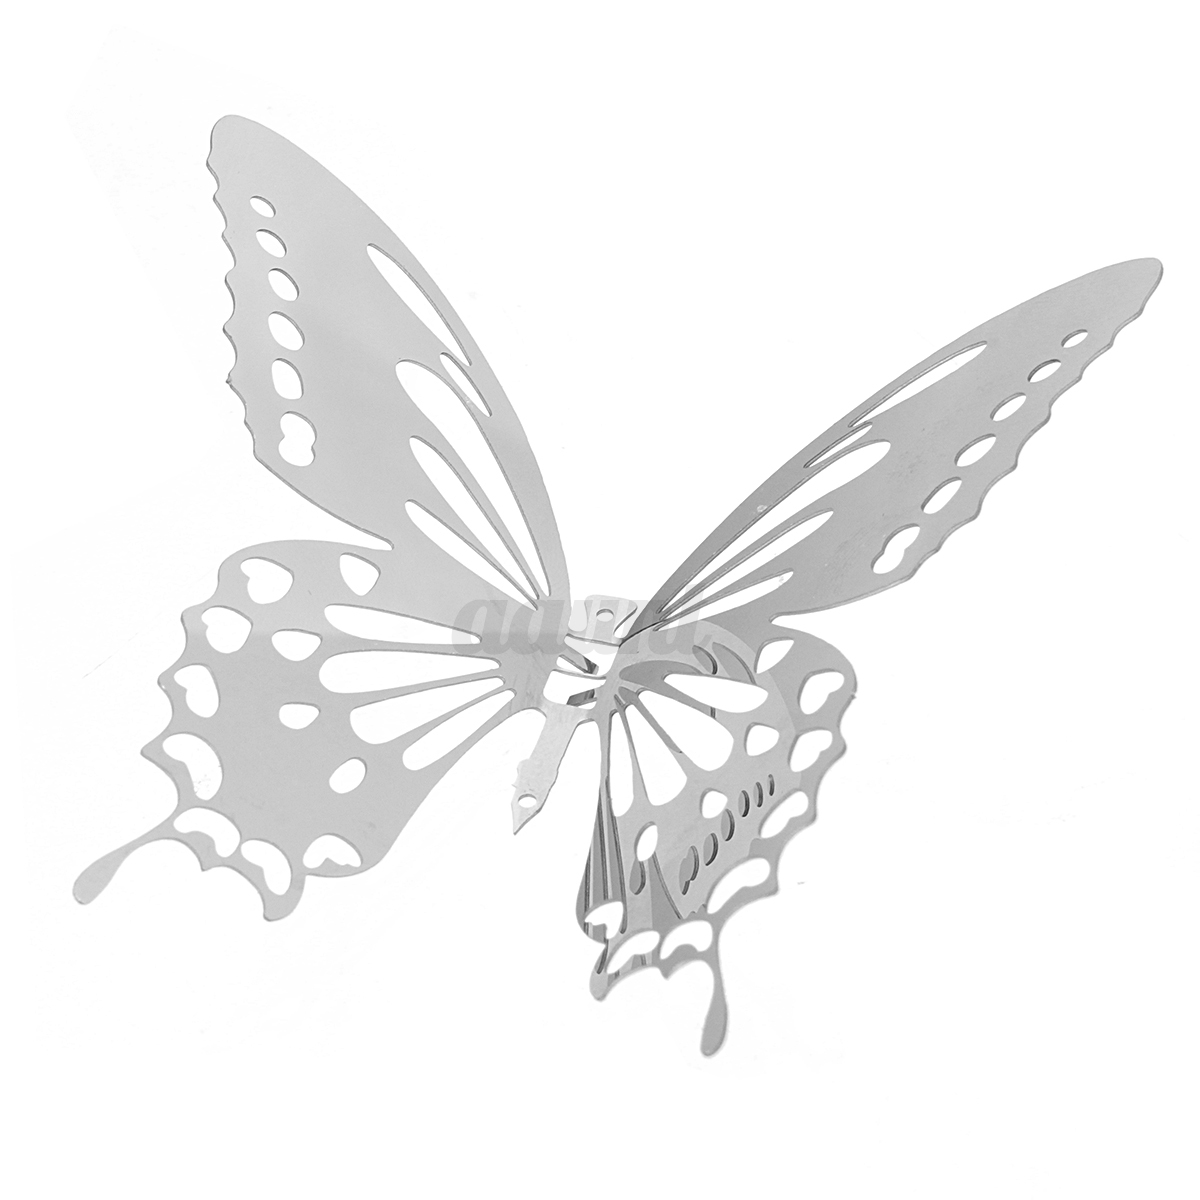 10pcs 3d stainless butterfly wall stickers silver mirror for Butterfly wall mural stickers